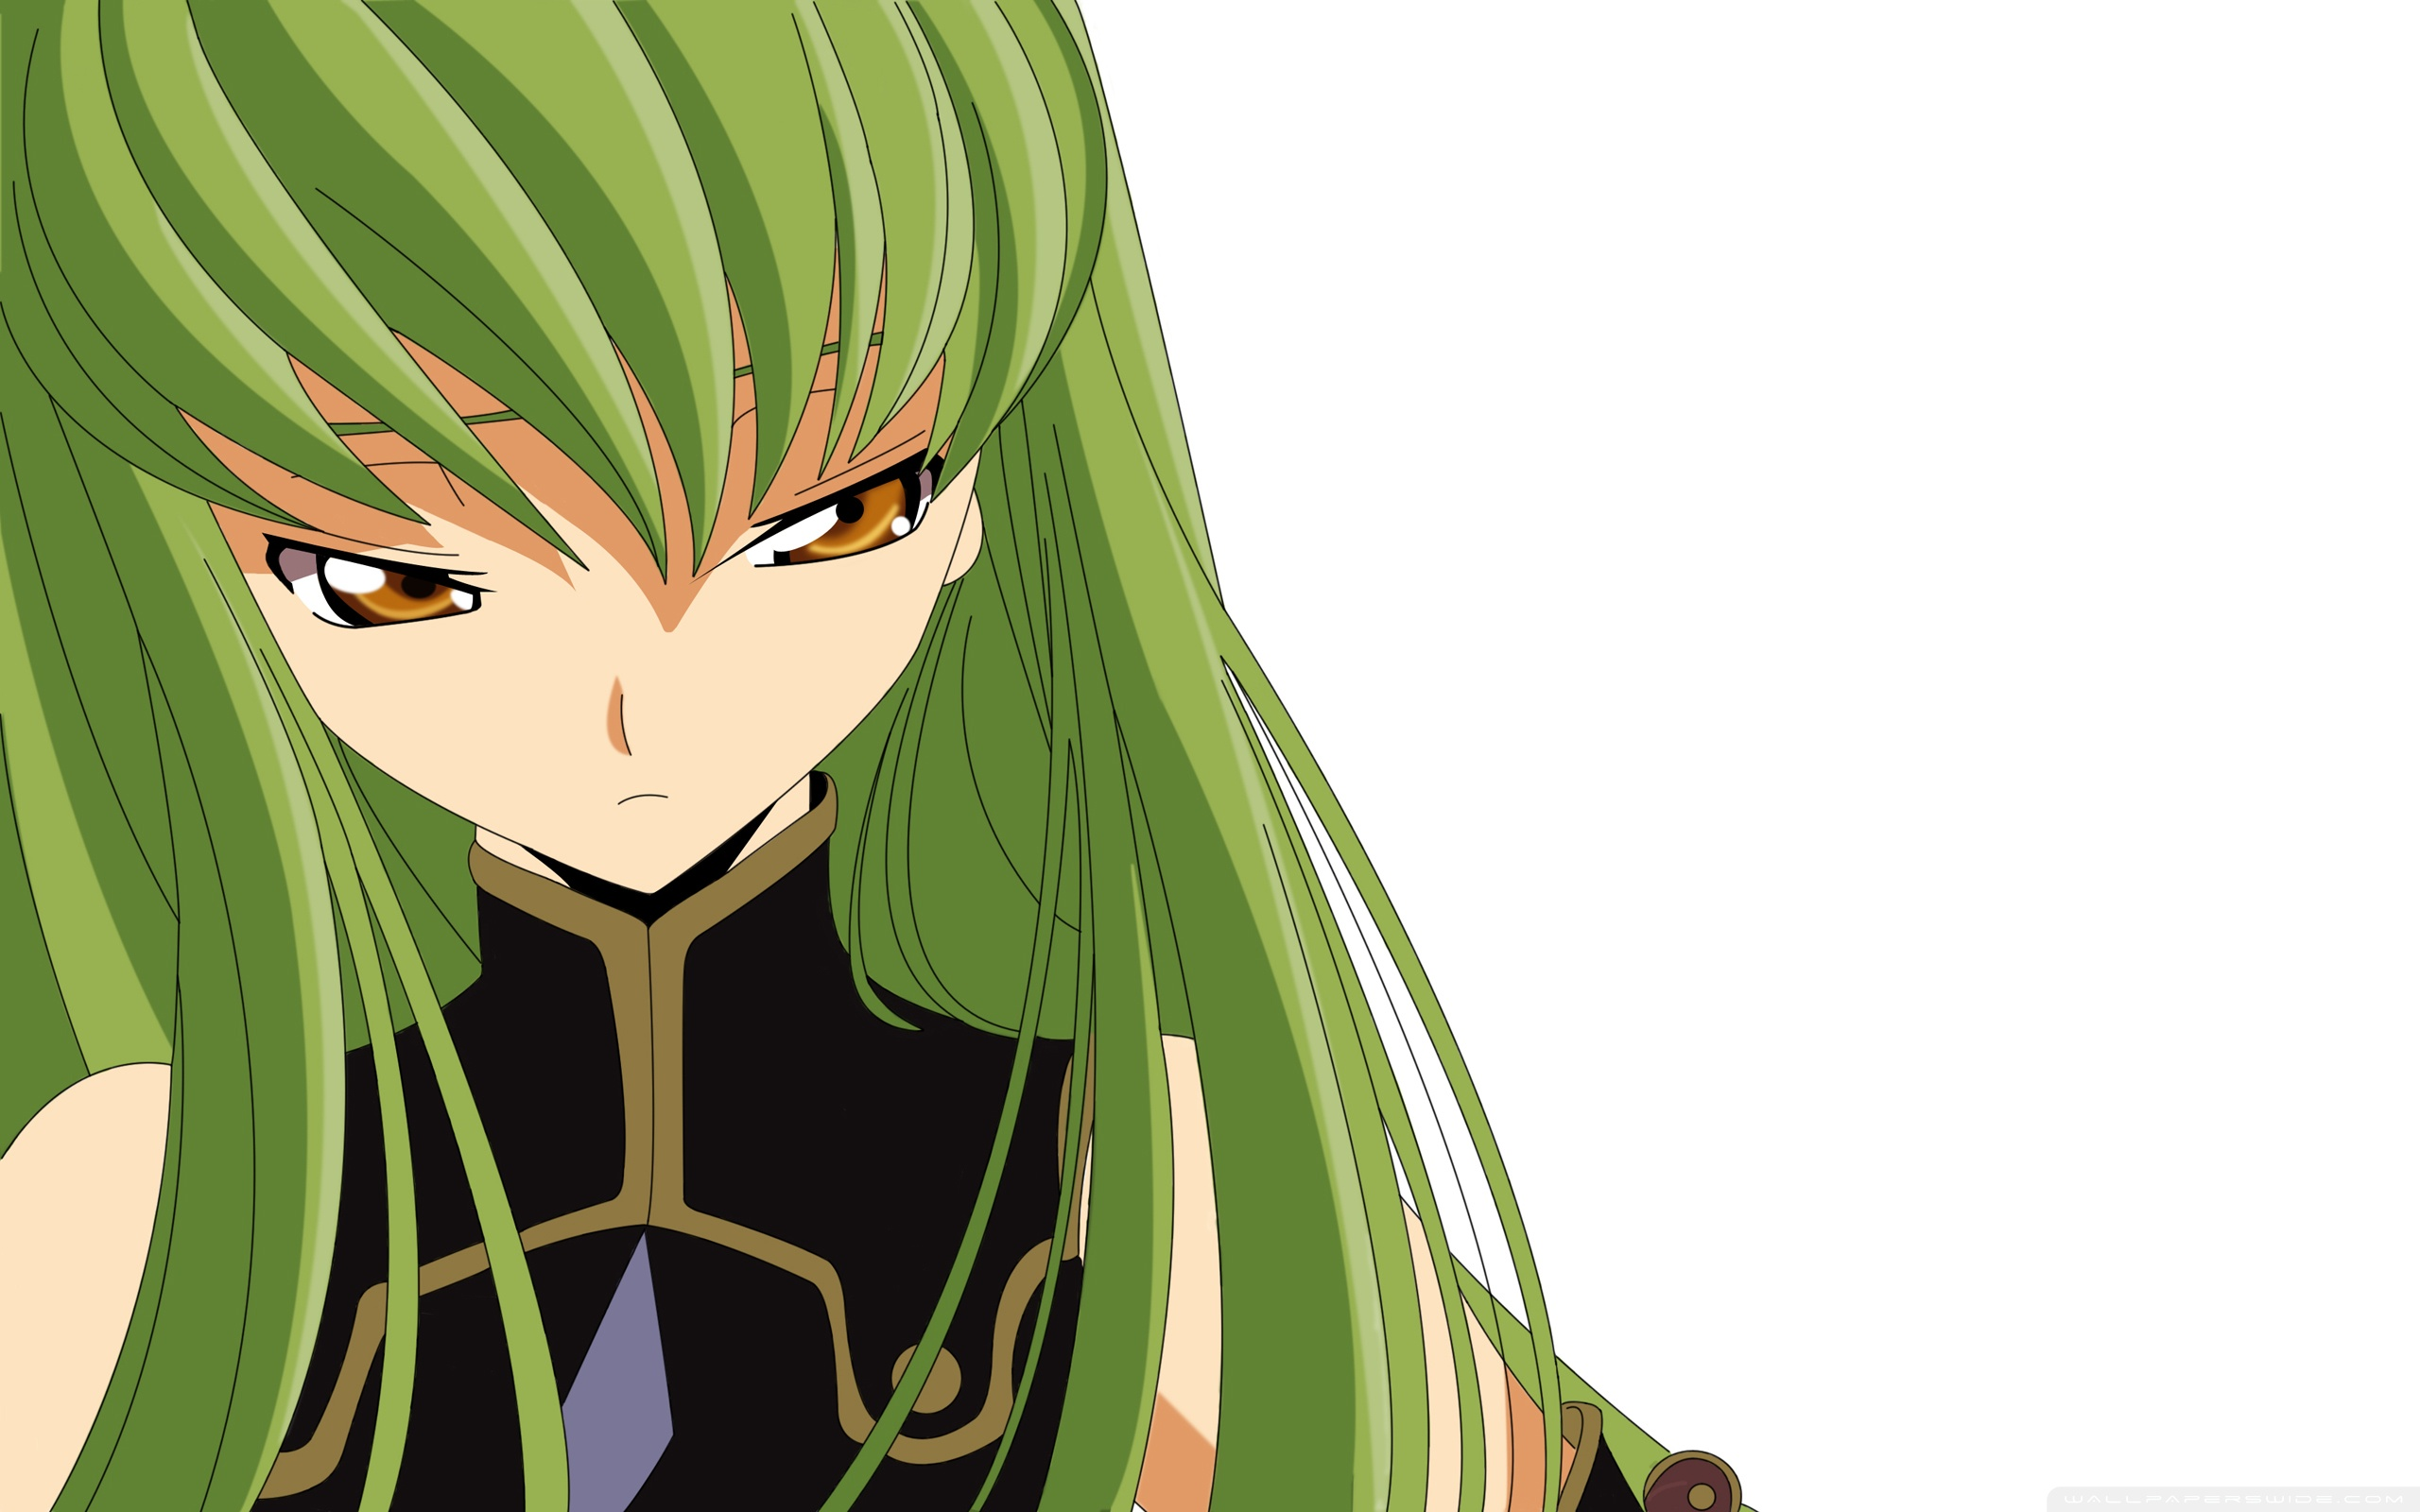 Cute Girl Wallpaper 1920x1080 Code Geass Cc Vi 4k Hd Desktop Wallpaper For 4k Ultra Hd